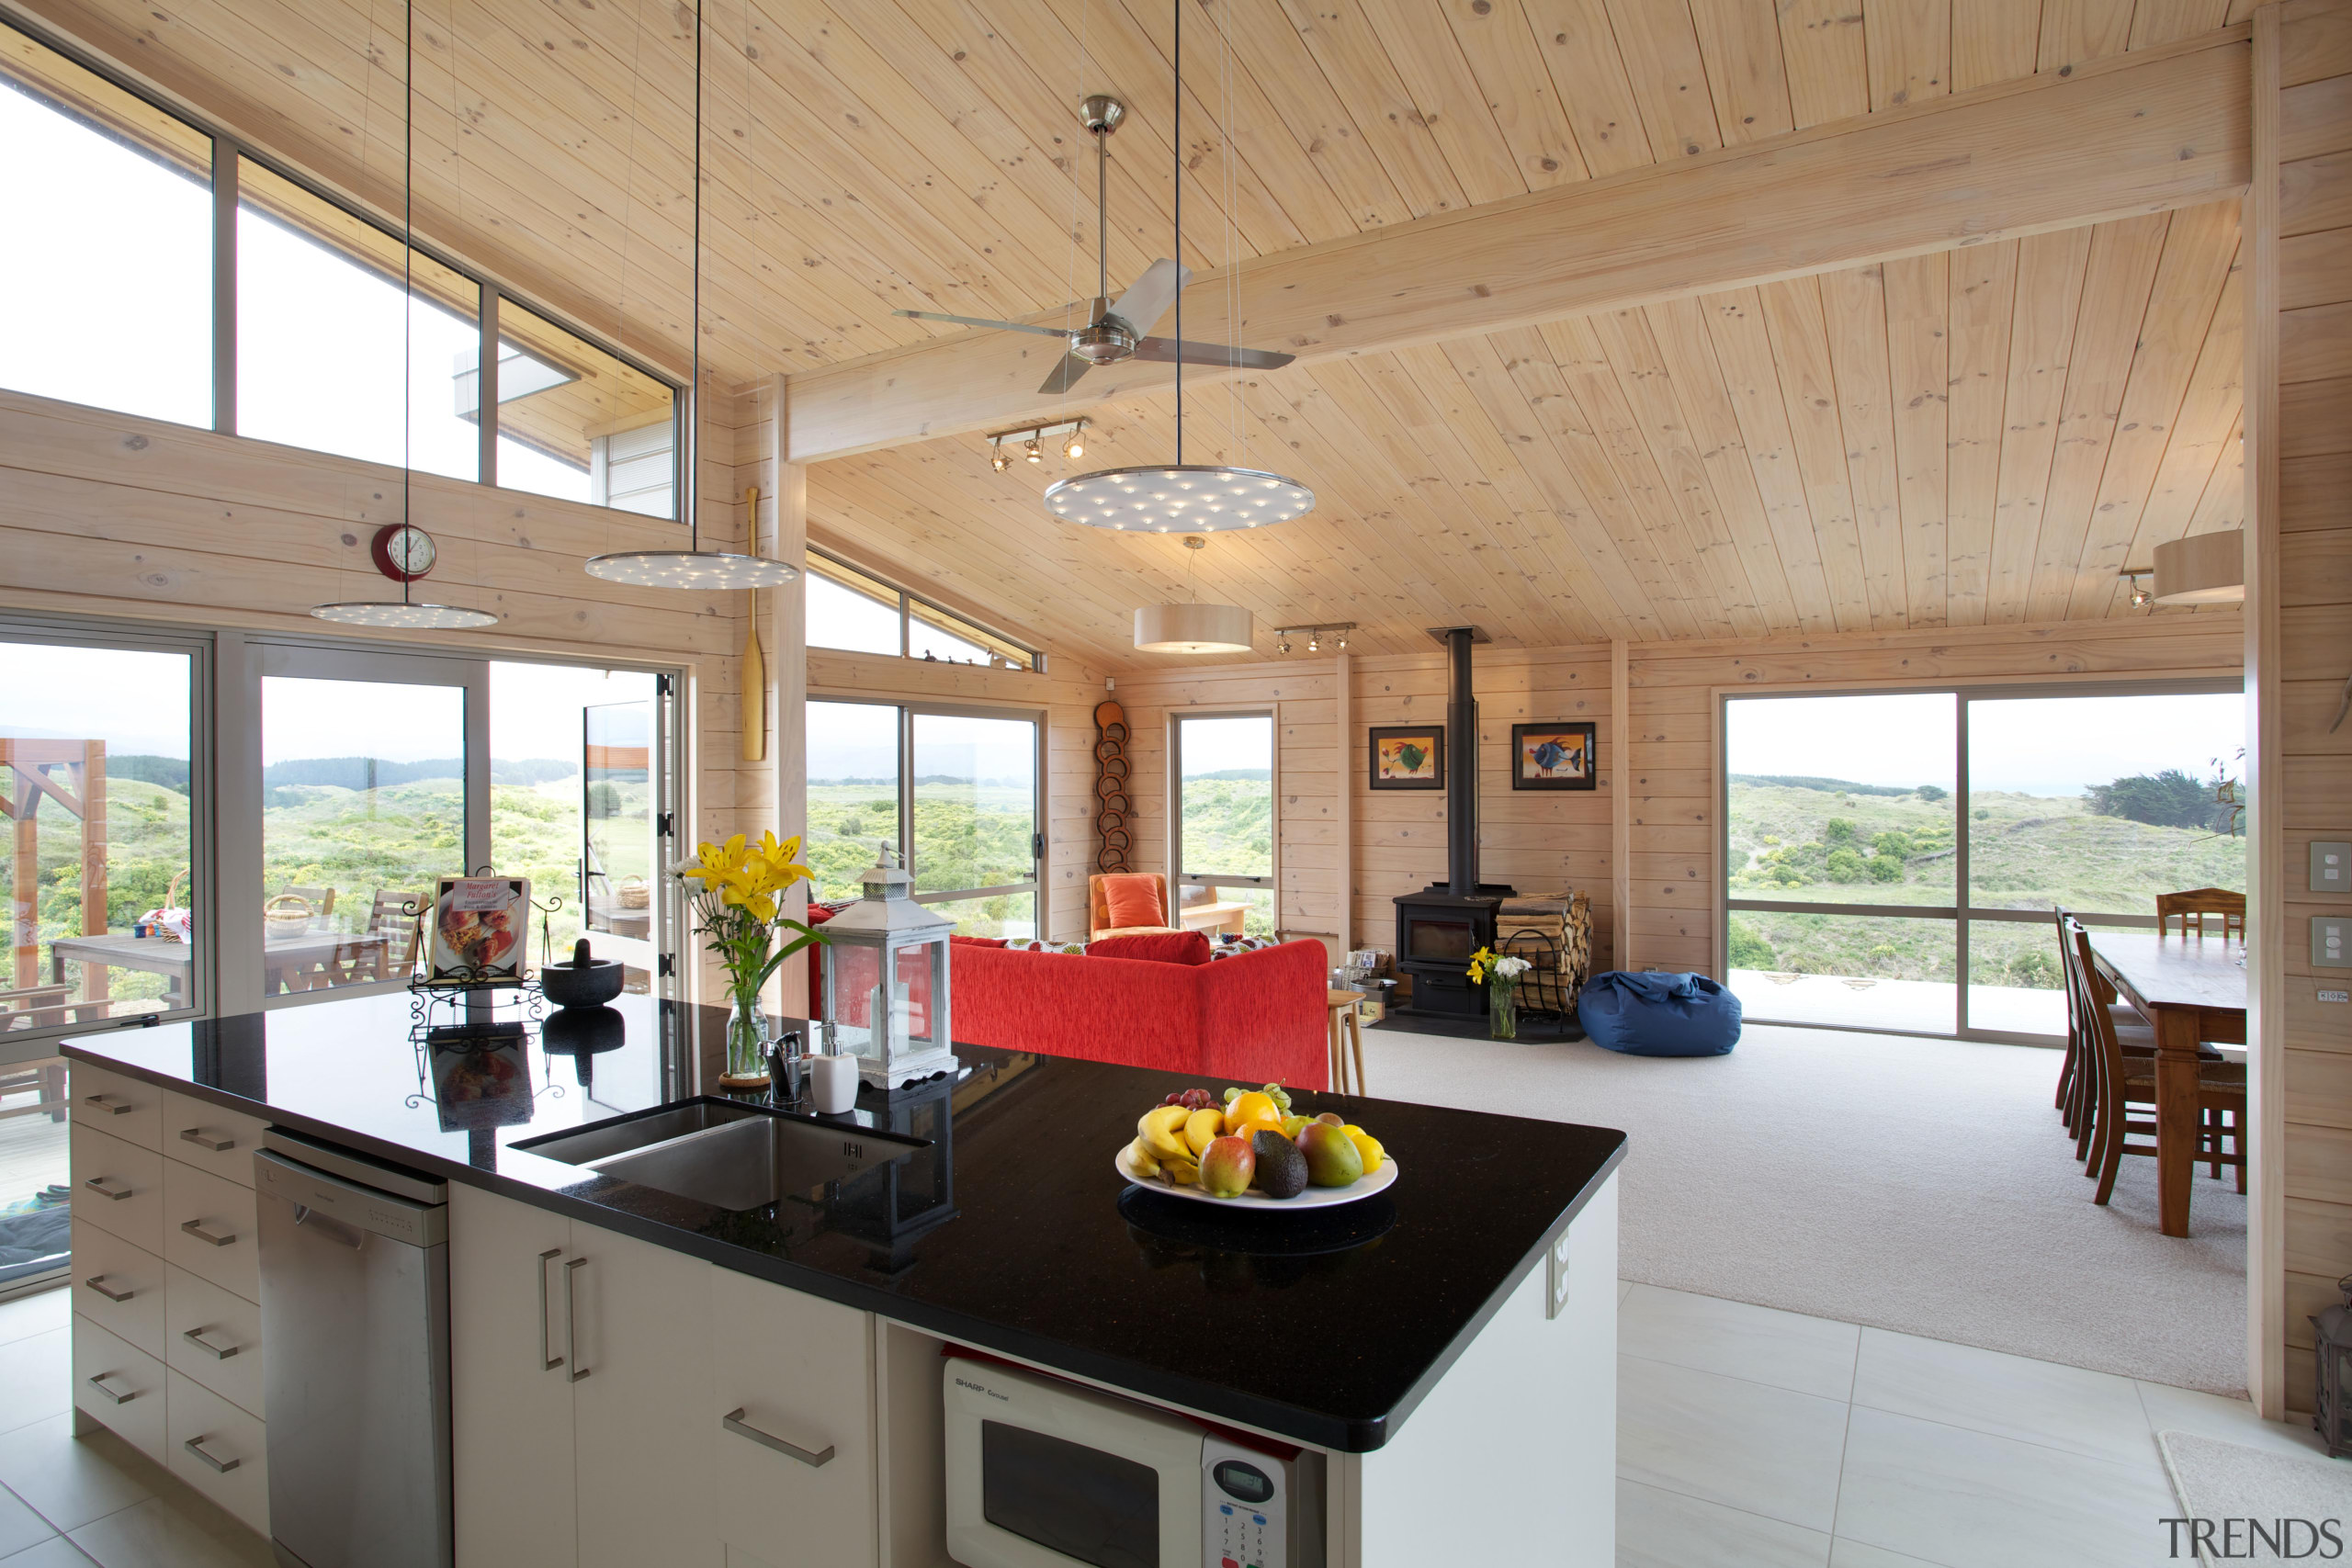 Solid blonded timber walls and ceilings keep this ceiling, countertop, house, interior design, kitchen, real estate, window